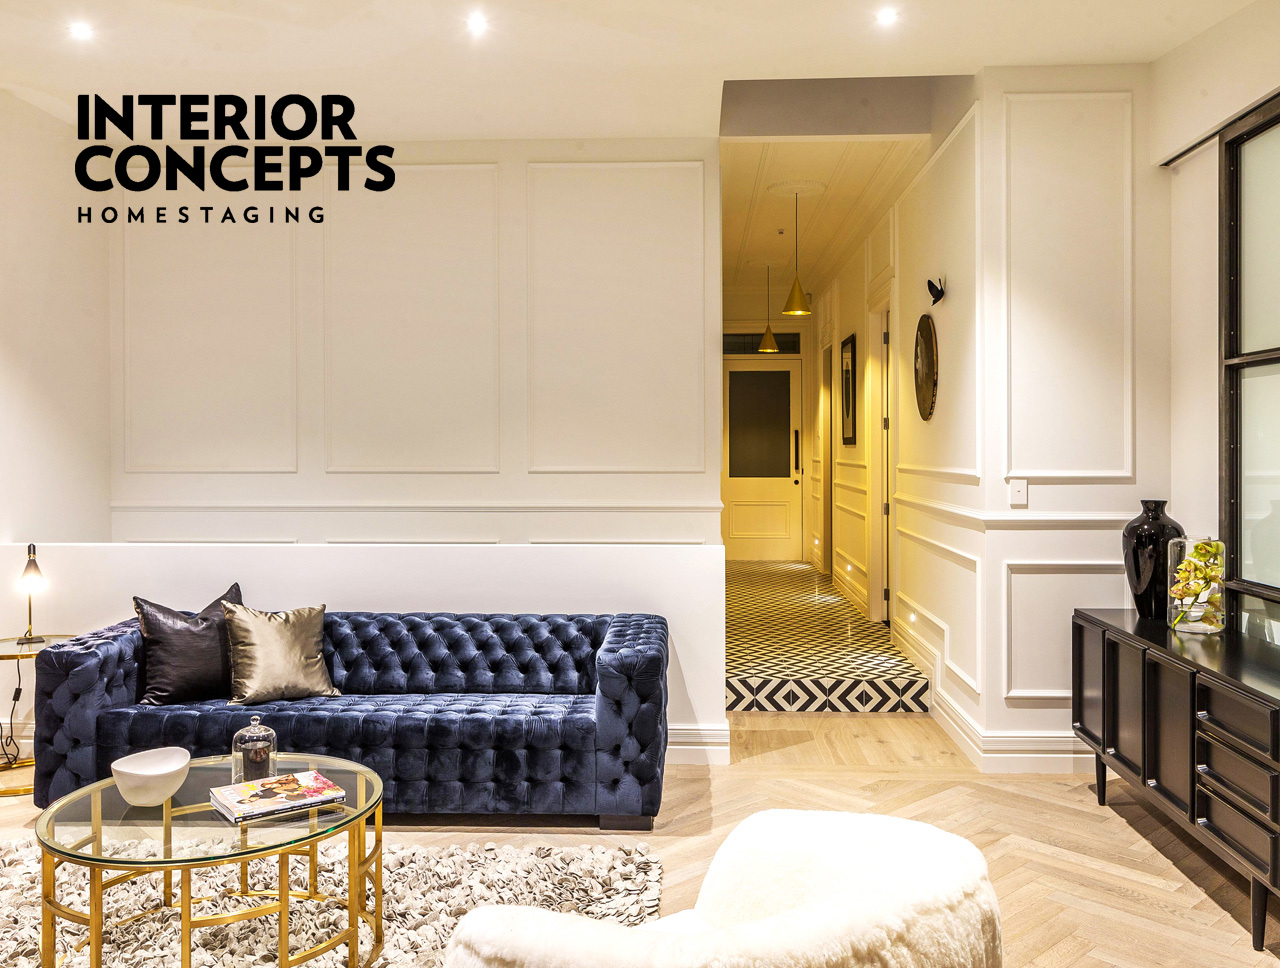 Interior Concepts | Home Staging And Interior Design